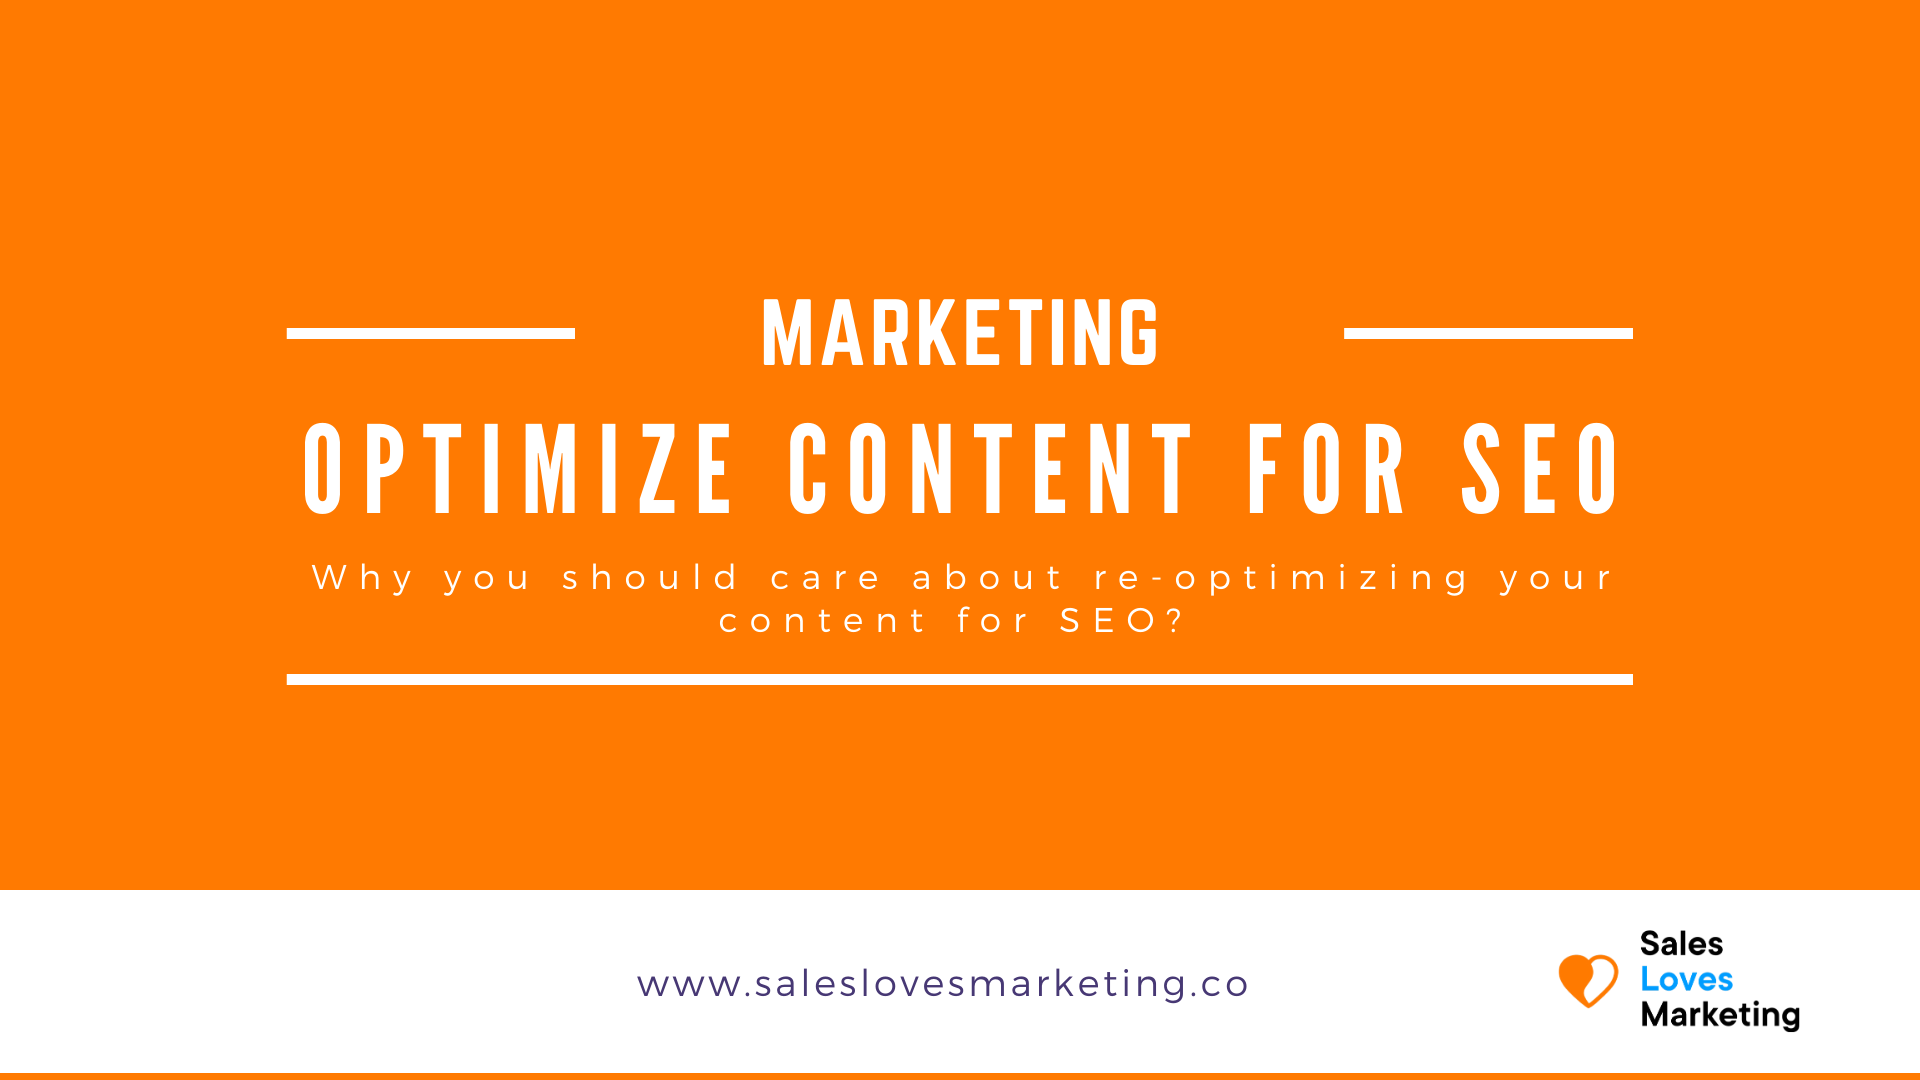 Start re-optimizing your website content for seo purposes